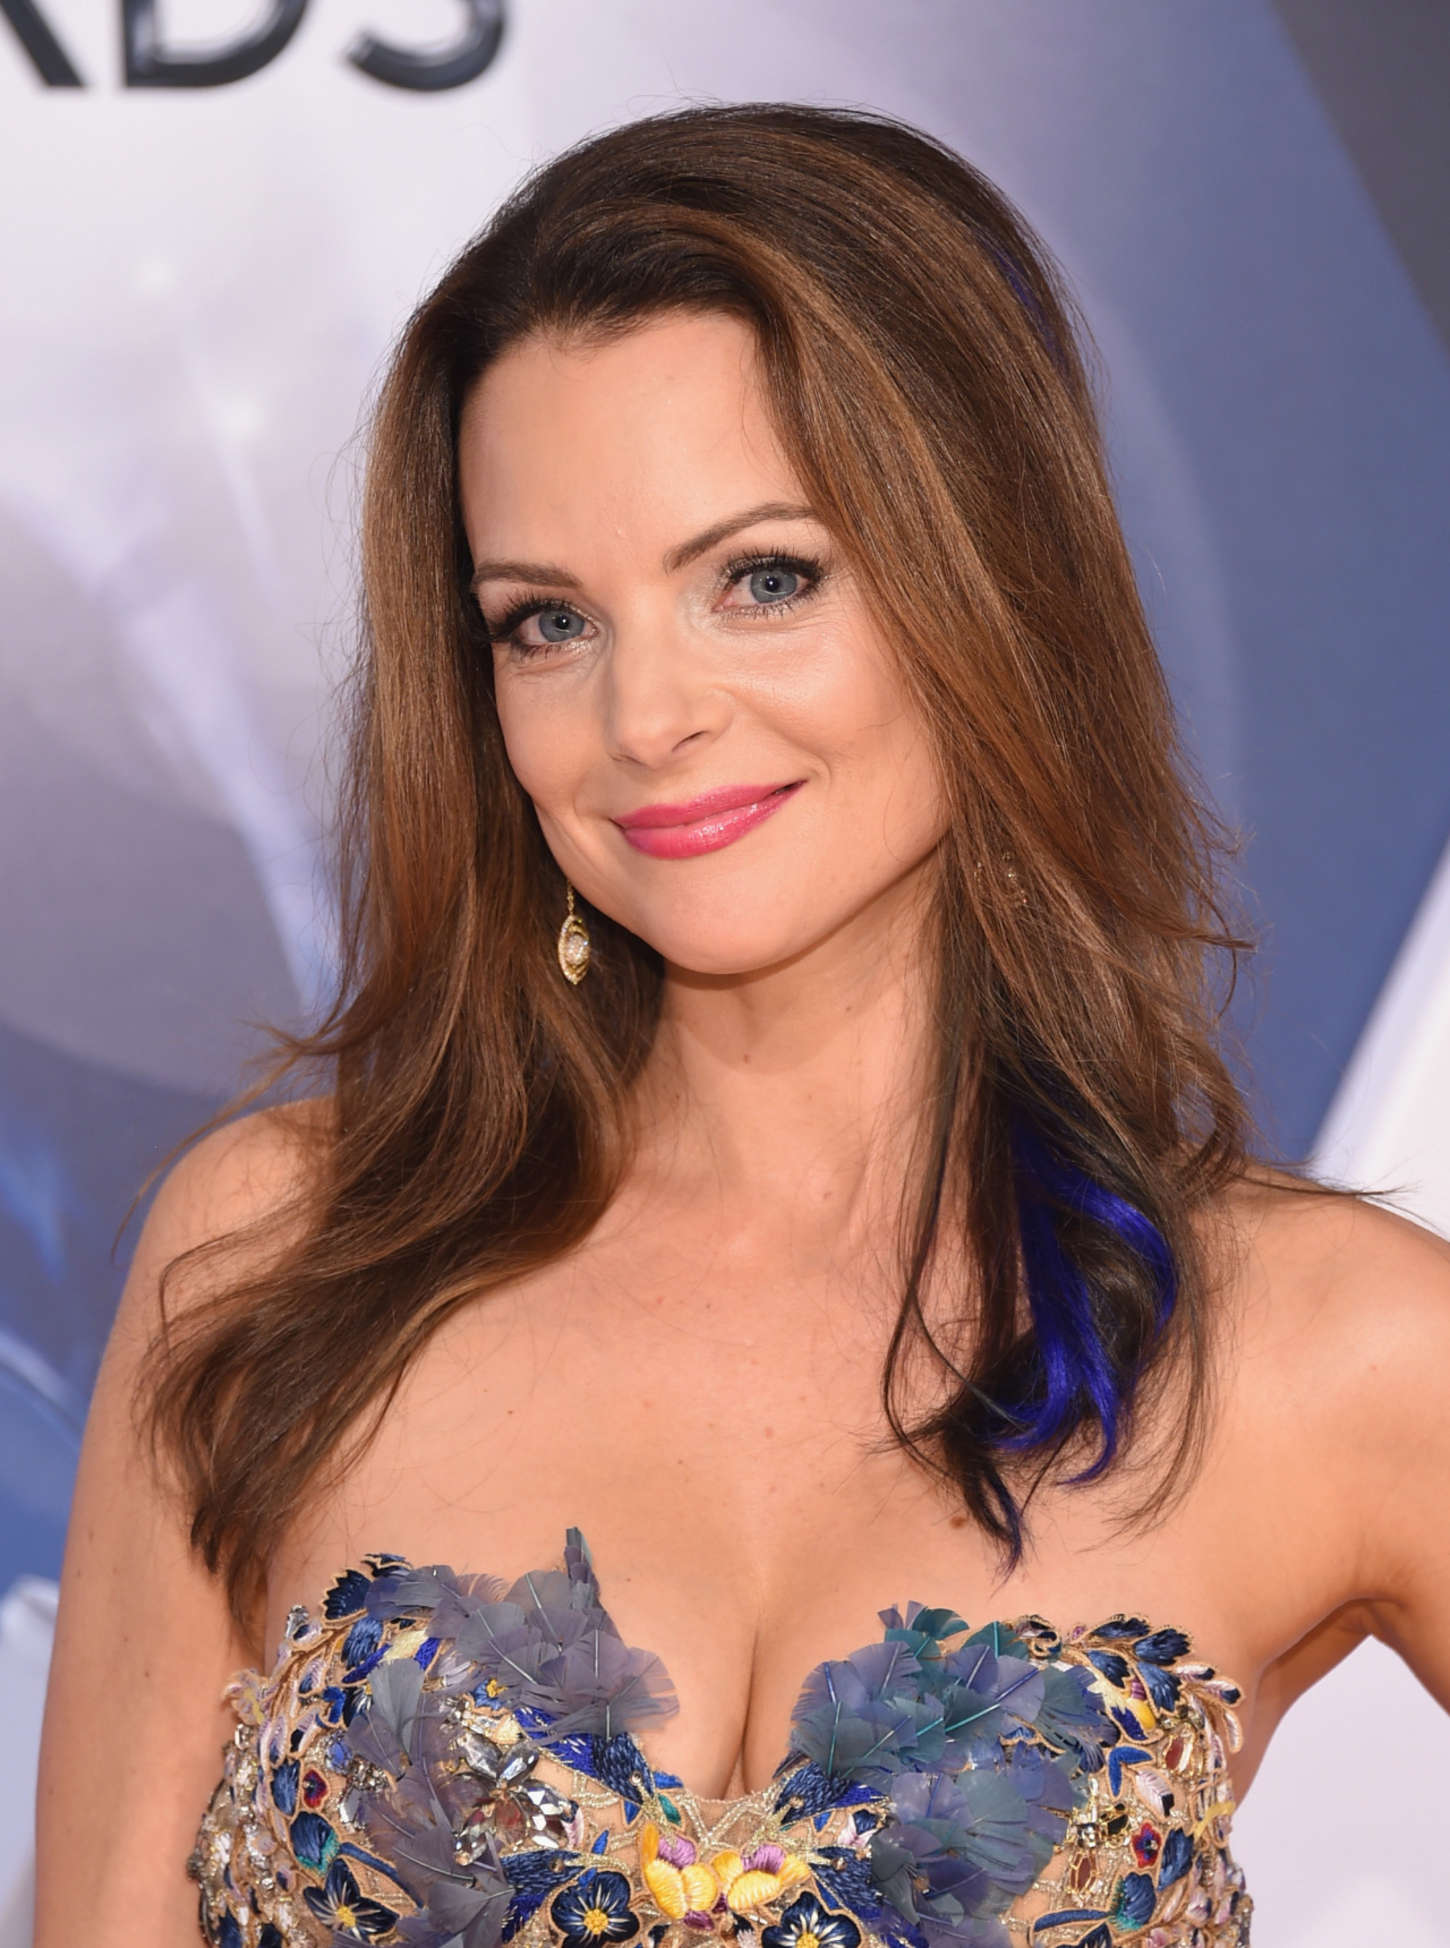 sex-vids-kimberly-williams-nice-butt-naked-party